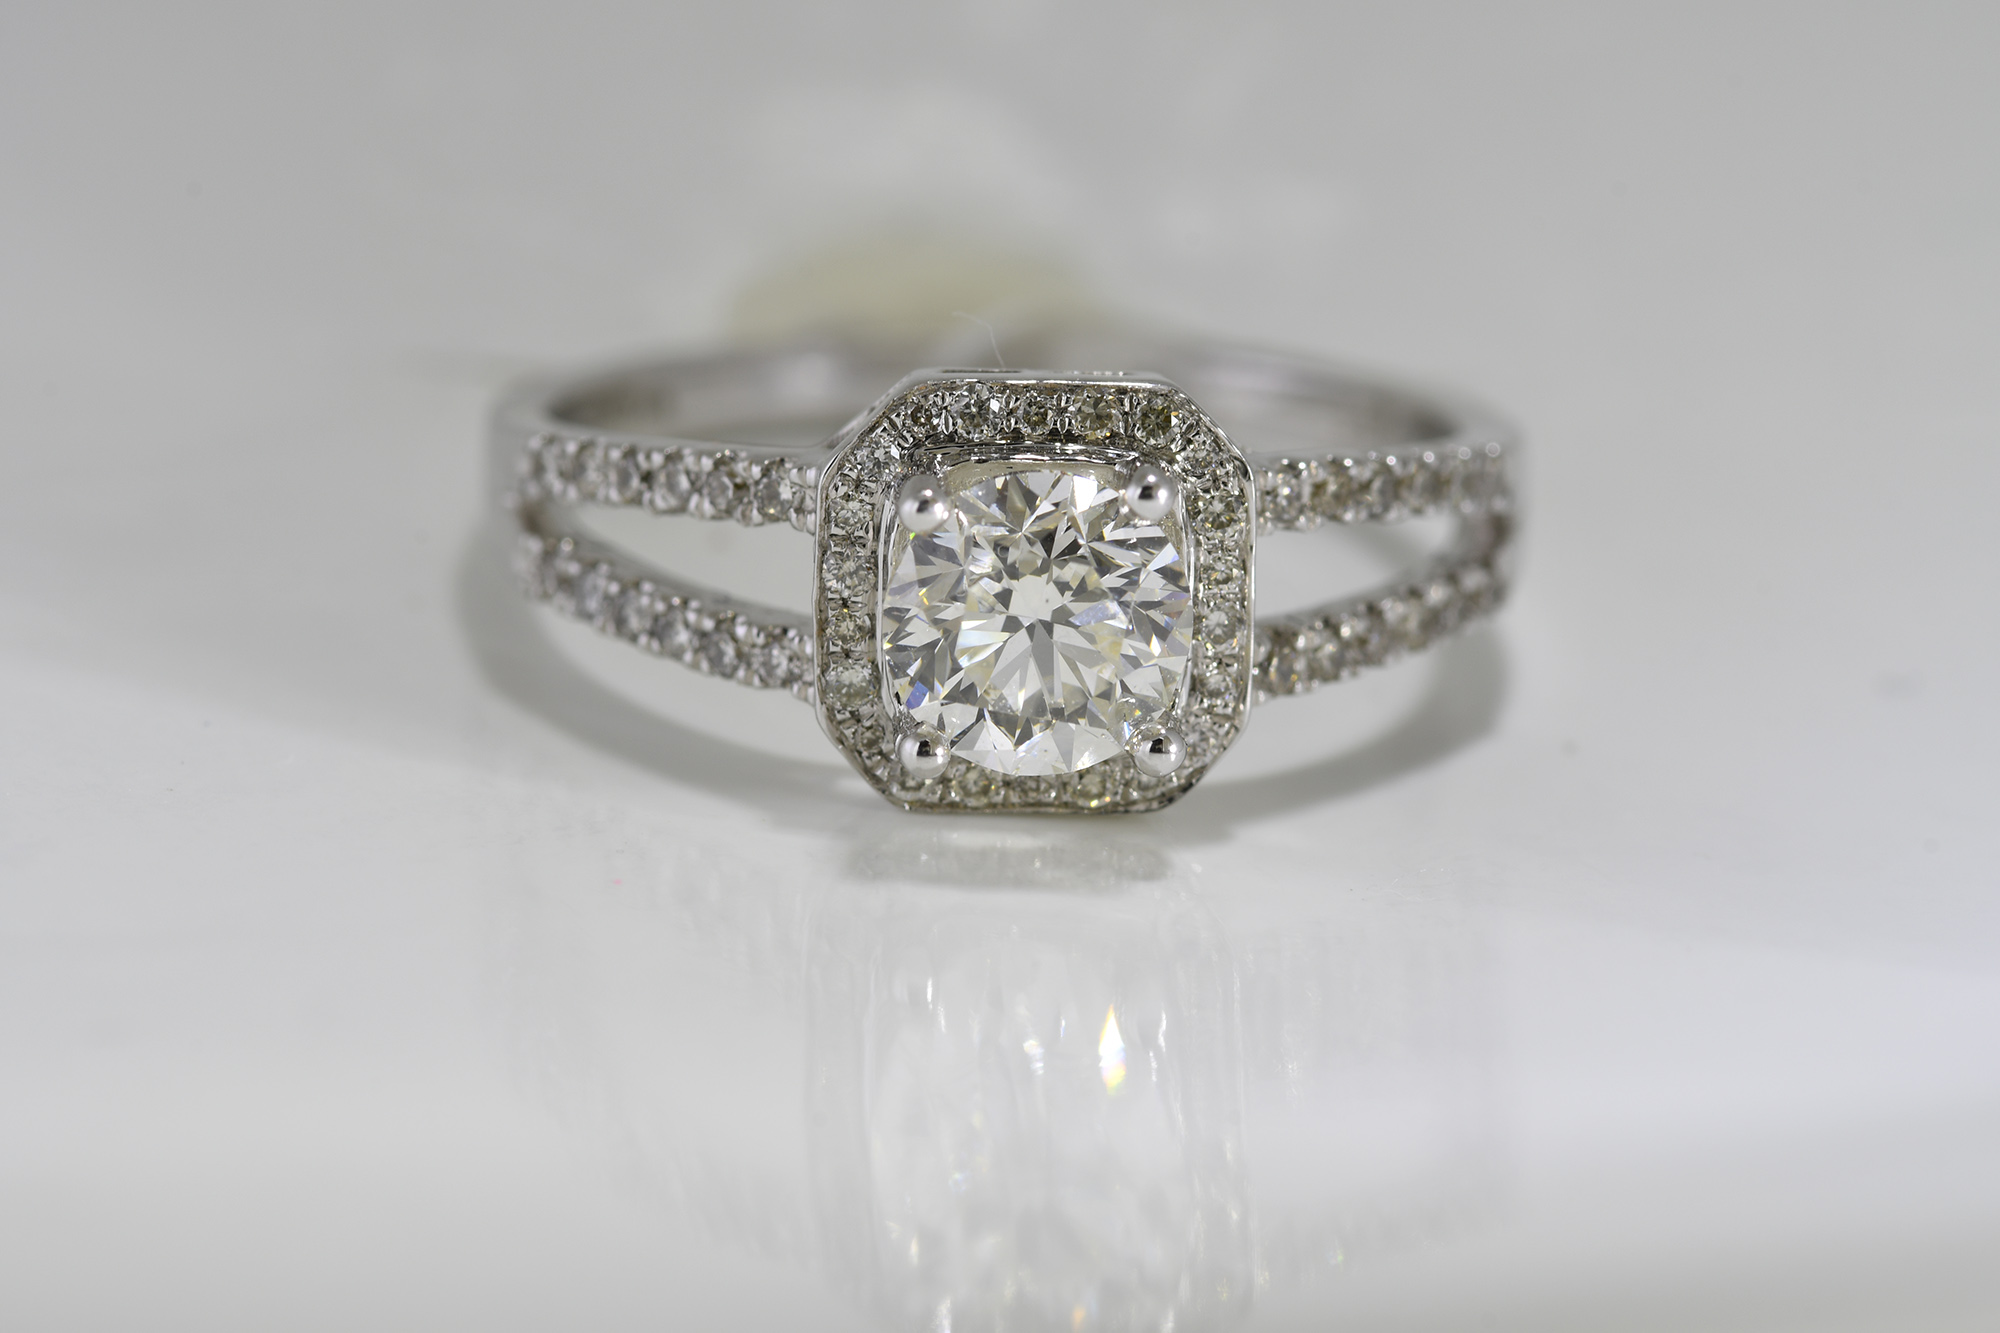 Solitaire Diamond Ring - Image 4 of 4